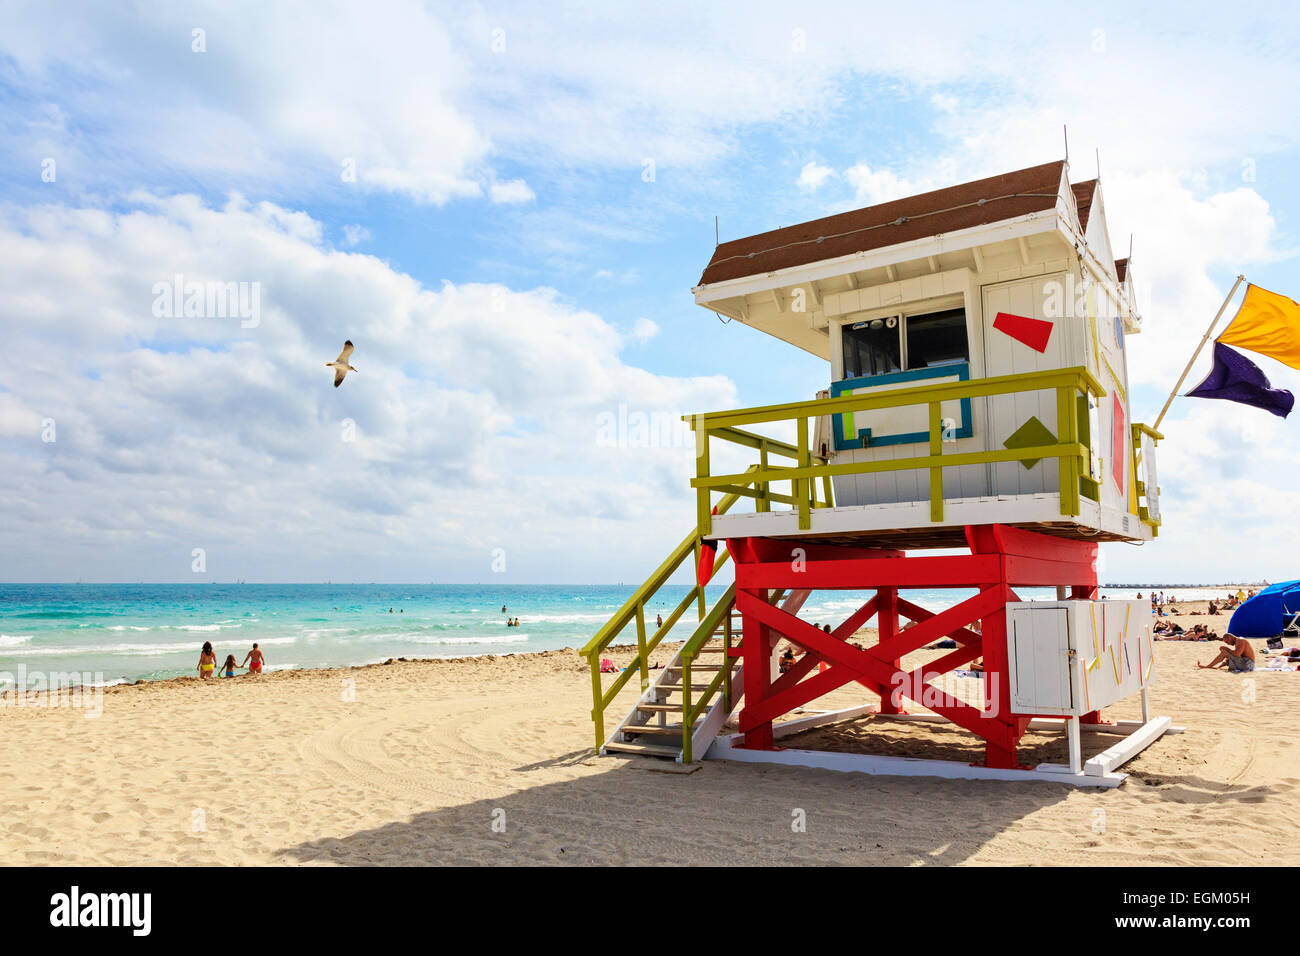 South Beach, Ocean View, Miami with the pacific Ocean and wooden lifeguard shelter, Miami, Florida, USA - Stock Image